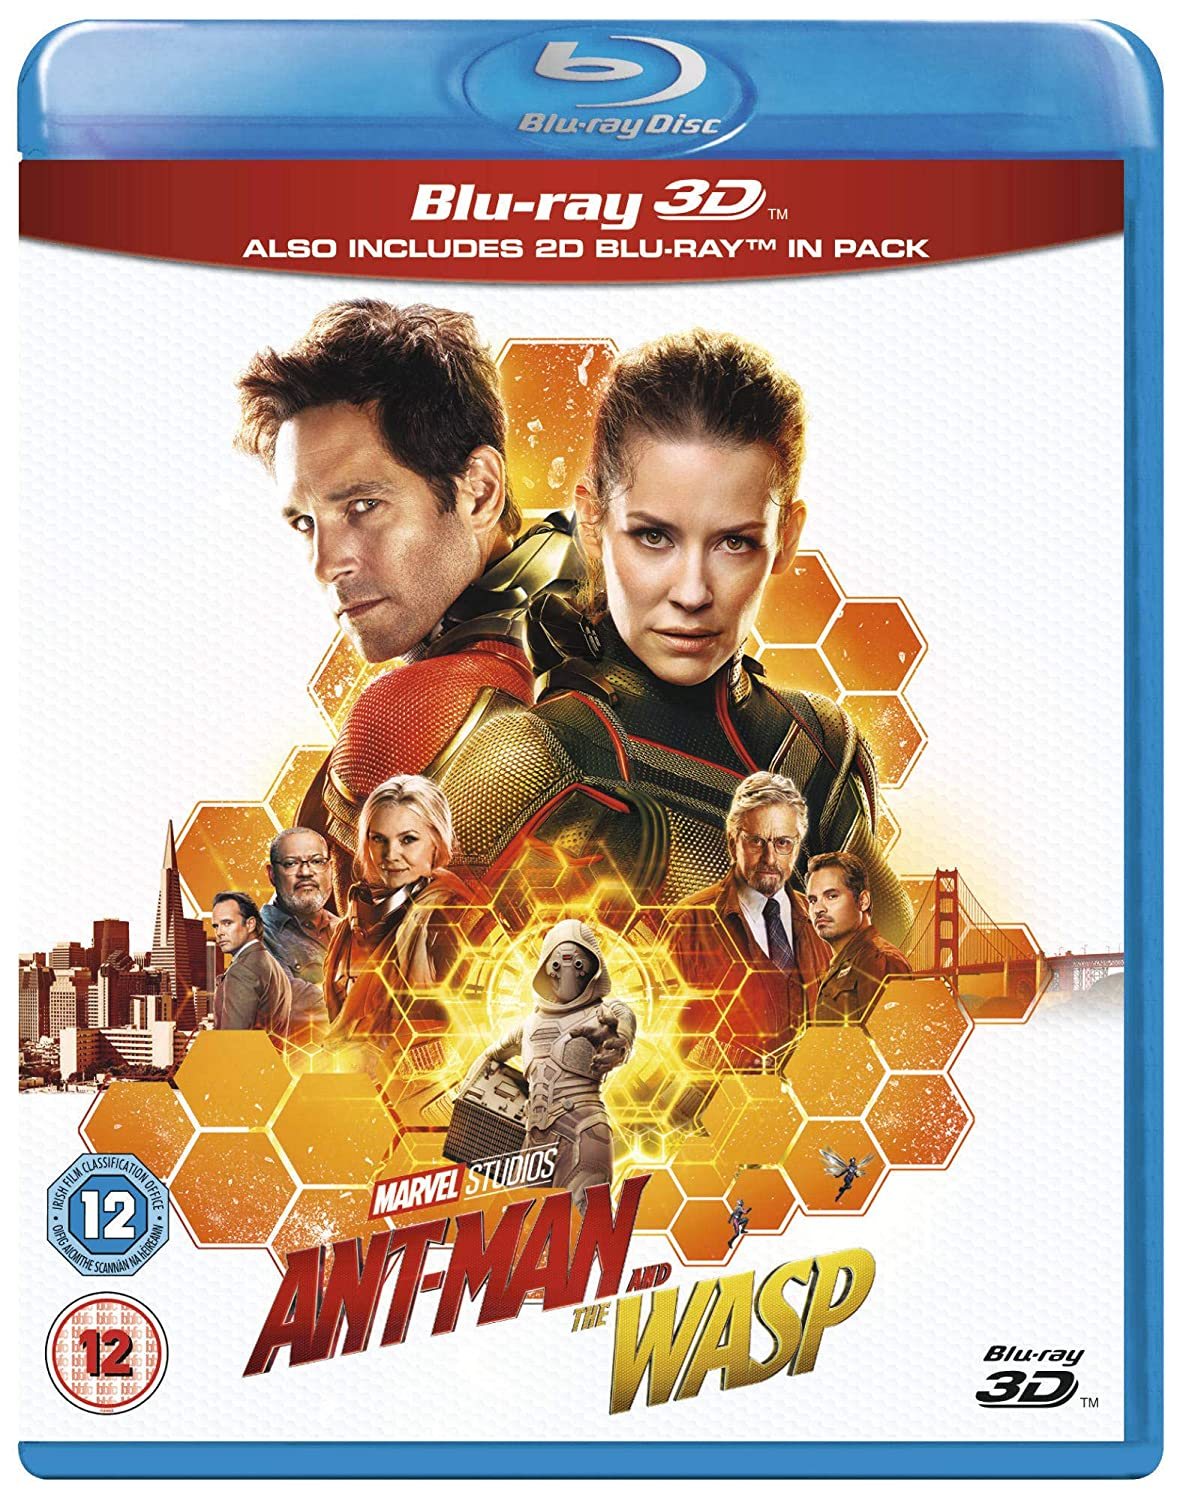 Ant-Man and the Wasp [3D + Blu-ray] [2018]